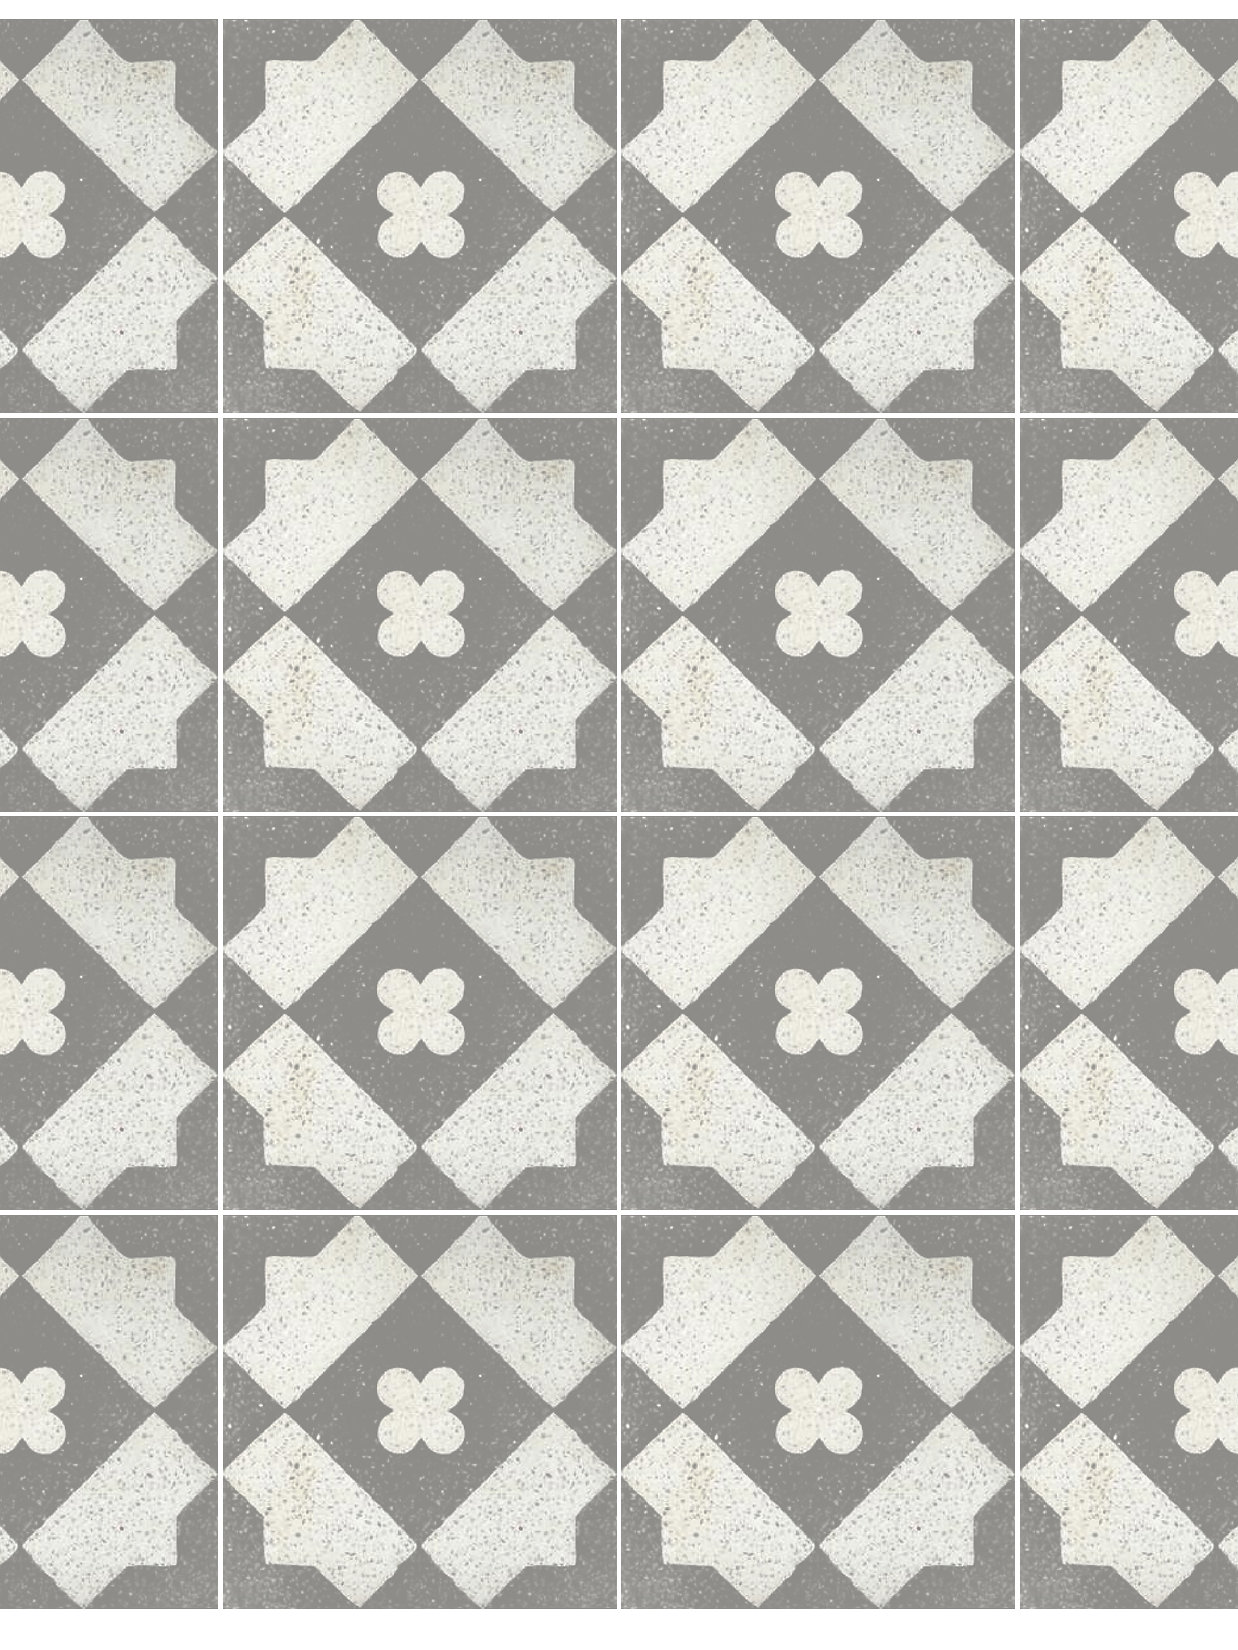 Tile decals quadrostyle vinyl floor tile sticker terrazzo quadrostyle offers you a new way to renovate your floors without hiring a tradesman our vinyl floor tile stickers are designed to cover your old floor dailygadgetfo Choice Image